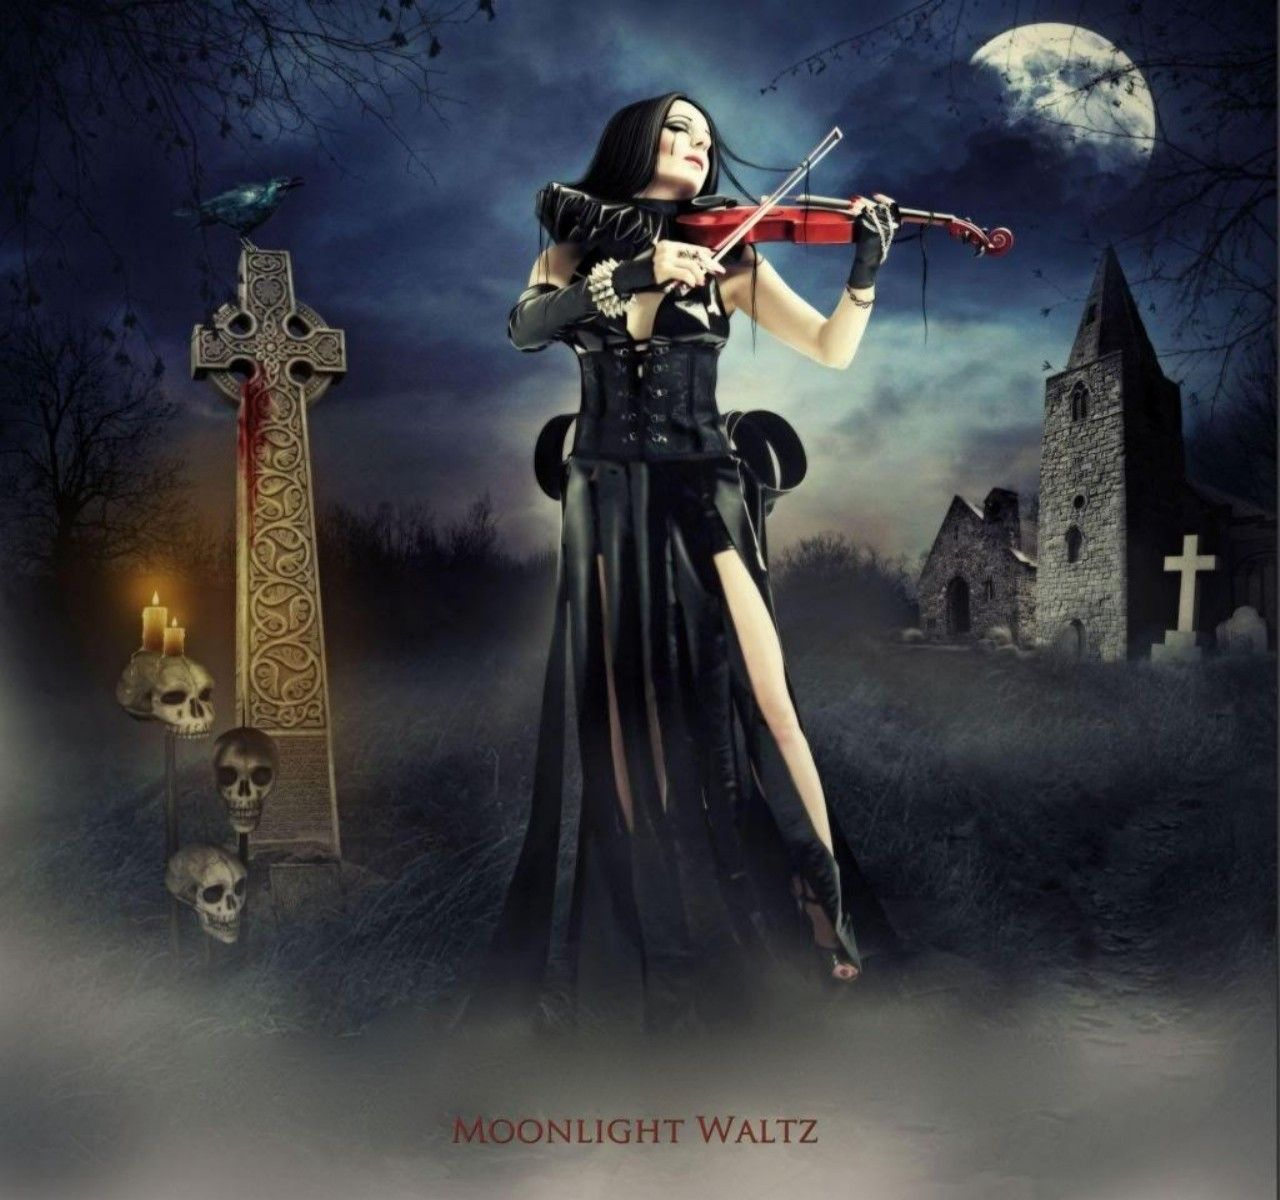 , DARK, FEMALE, GOTHIC, MOON, MOONLIGHT, MUSIC, NIGHT, VIOLIN, WALTZ